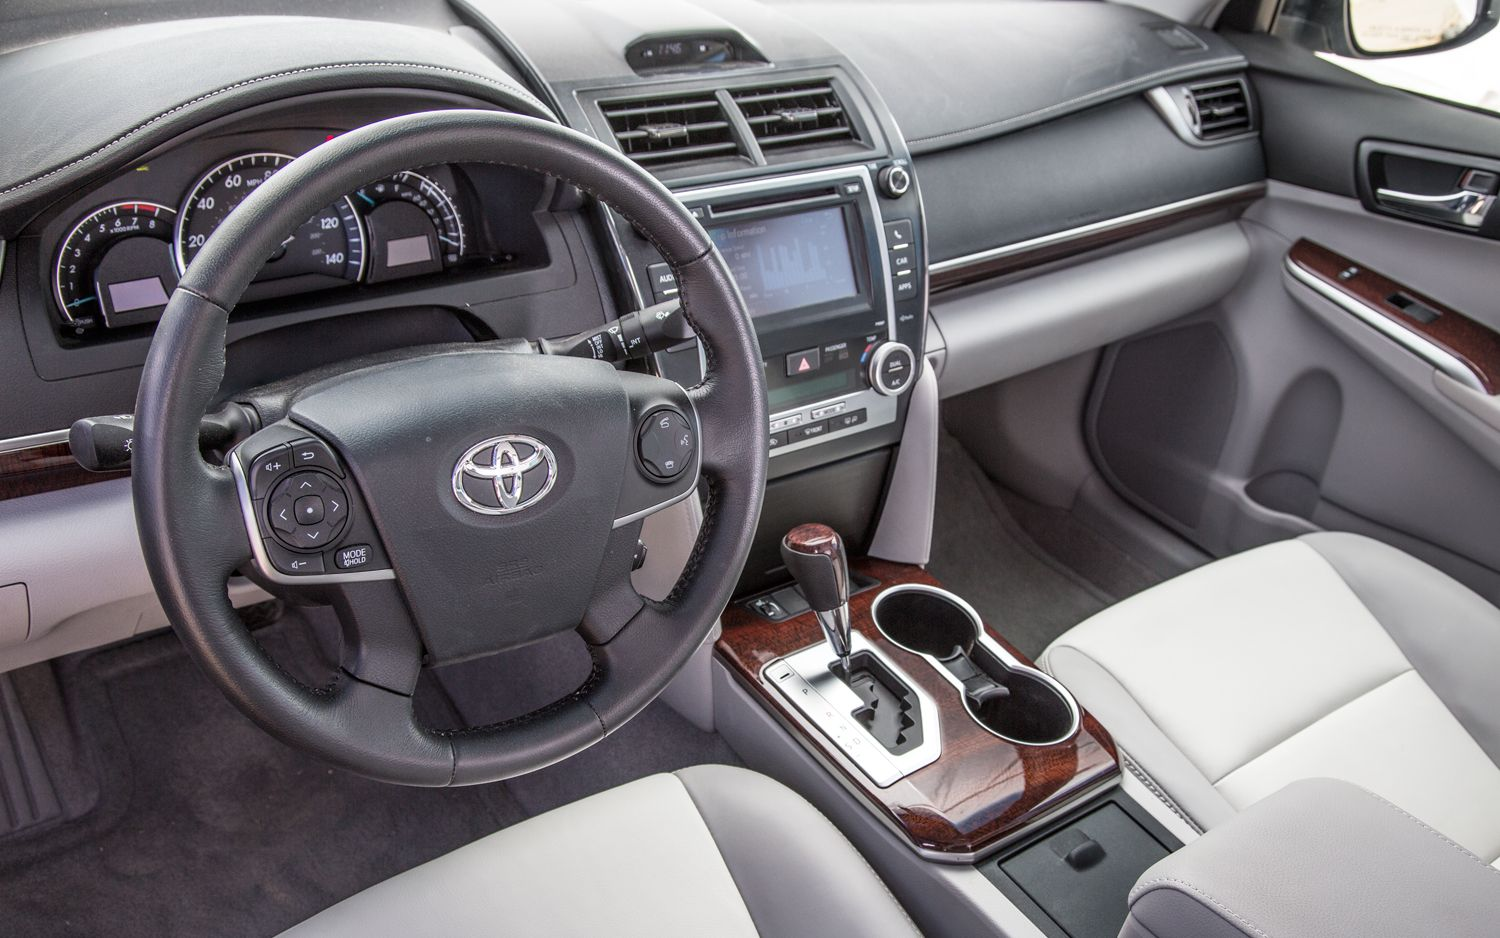 Exceptional Toyota Camry Xle 2013 | 2012 Toyota Camry XLE Interior Photo 26